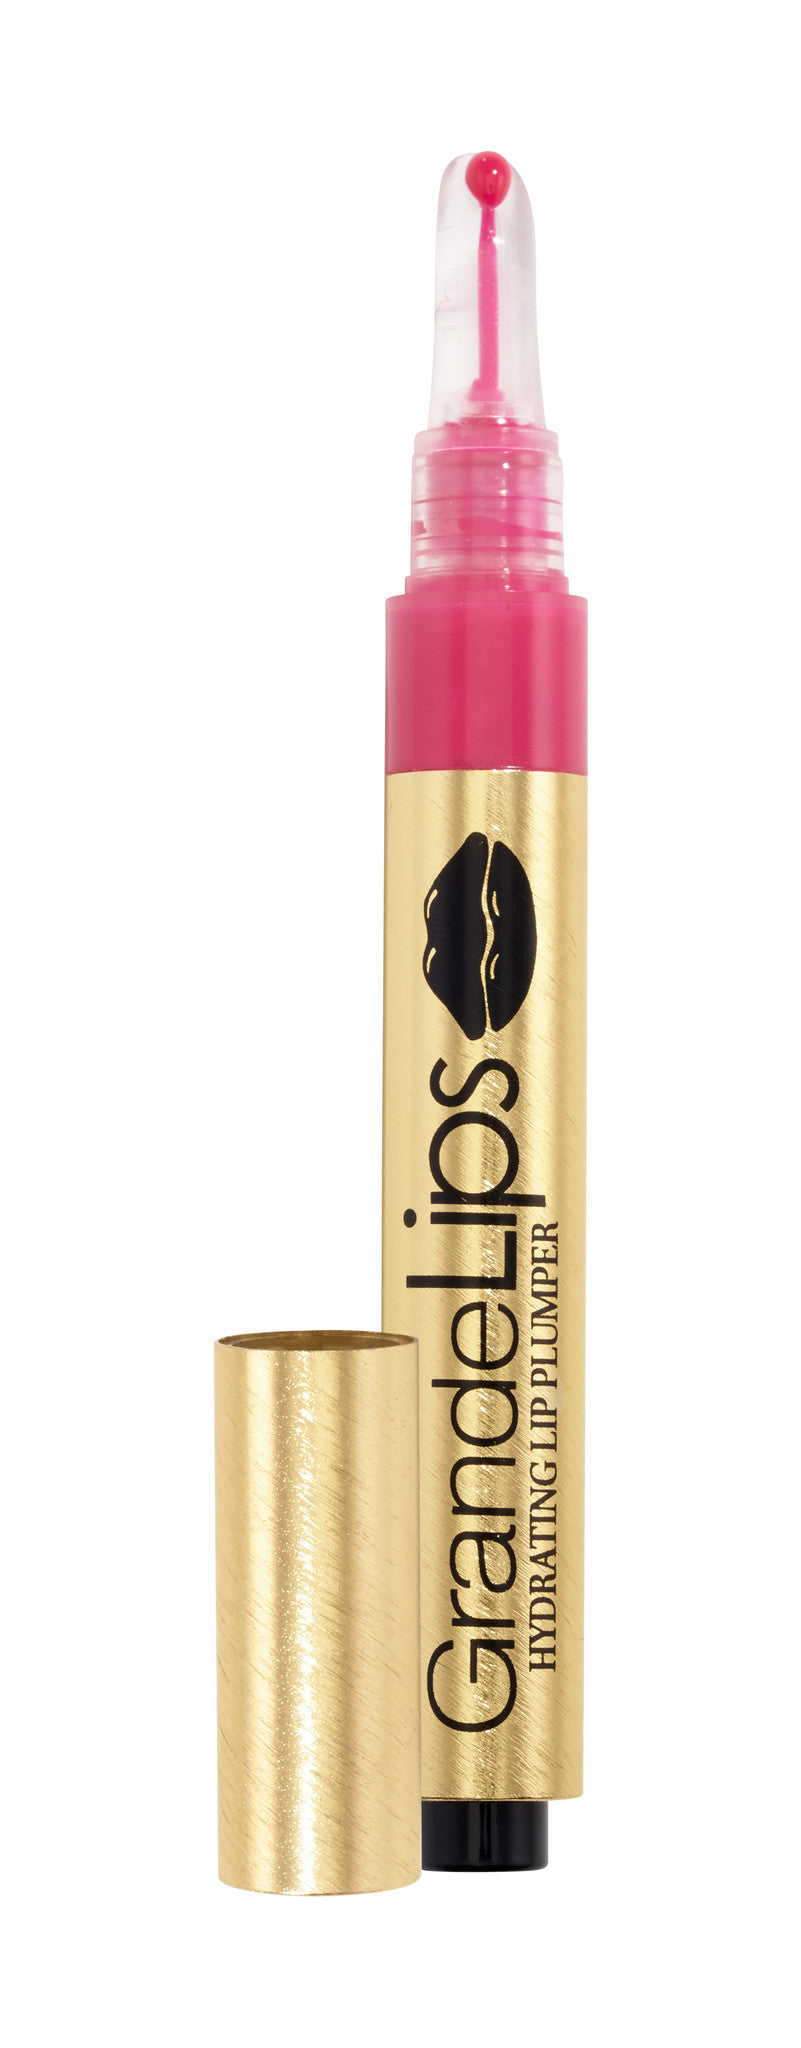 GrandeLips - Hydrating Lip Plumper with Collagen